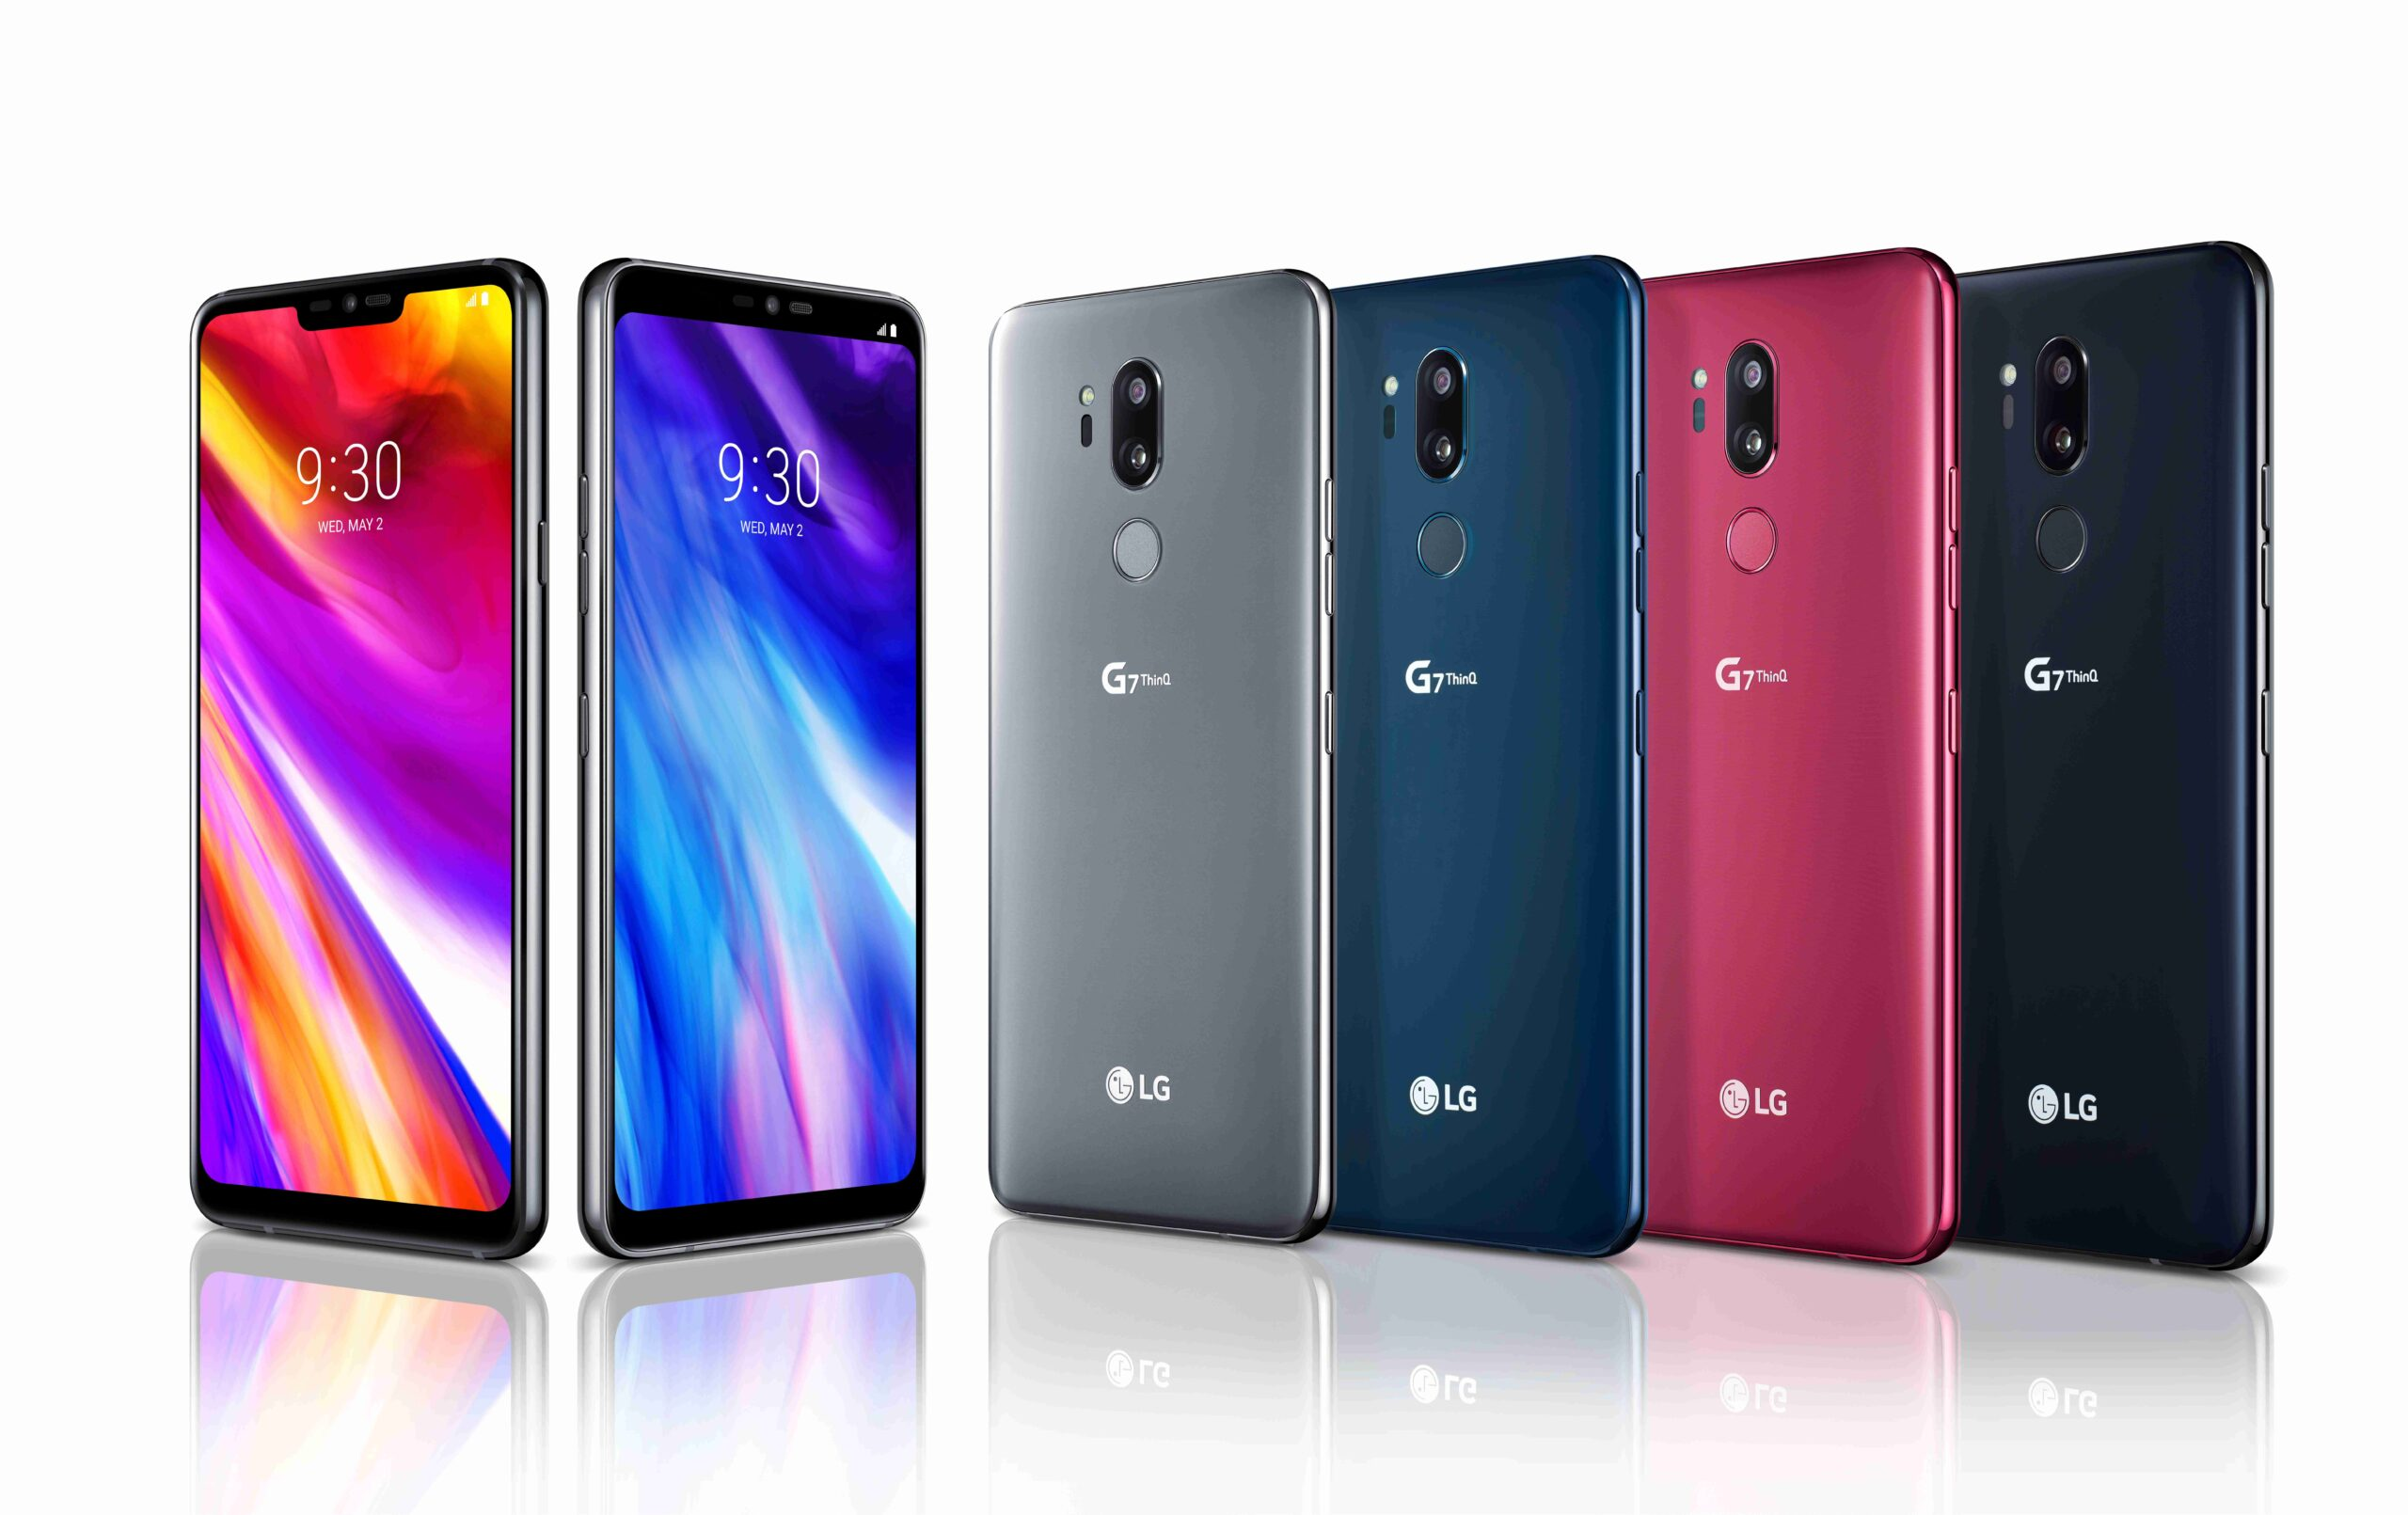 The front and rear view of the LG G7 ThinQ in New Platinum Gray, New Moroccan Blue, Raspberry Rose and New Aurora Black, side-by-side